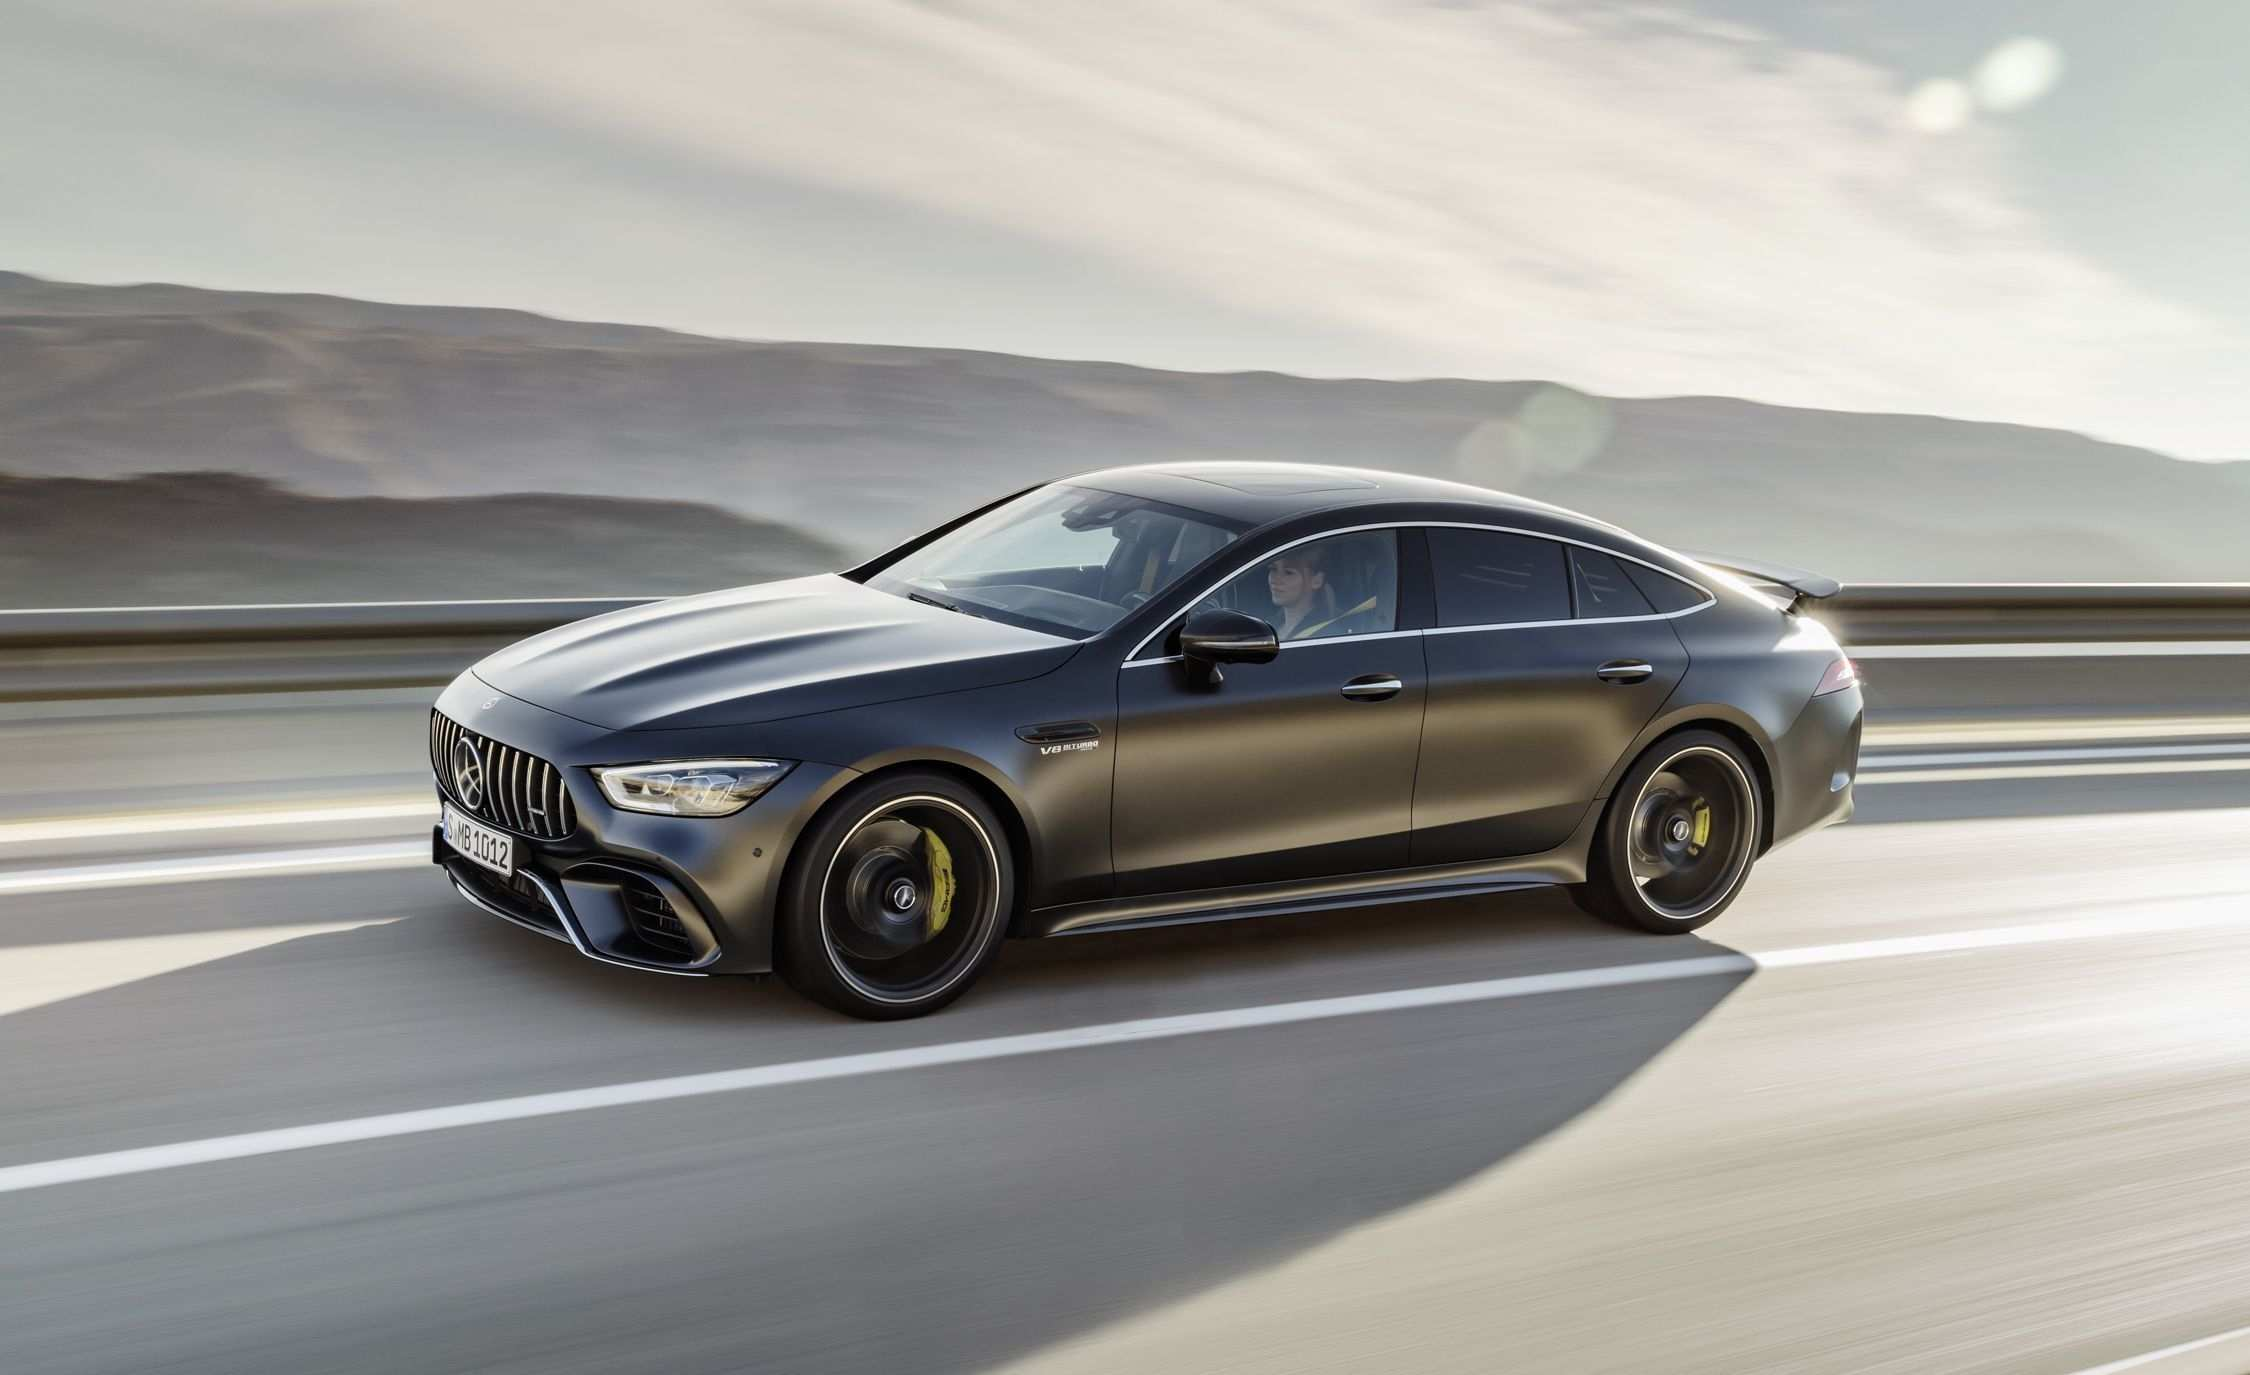 52 Best Review Best Mercedes Drivers 2019 Exterior Concept for Best Mercedes Drivers 2019 Exterior